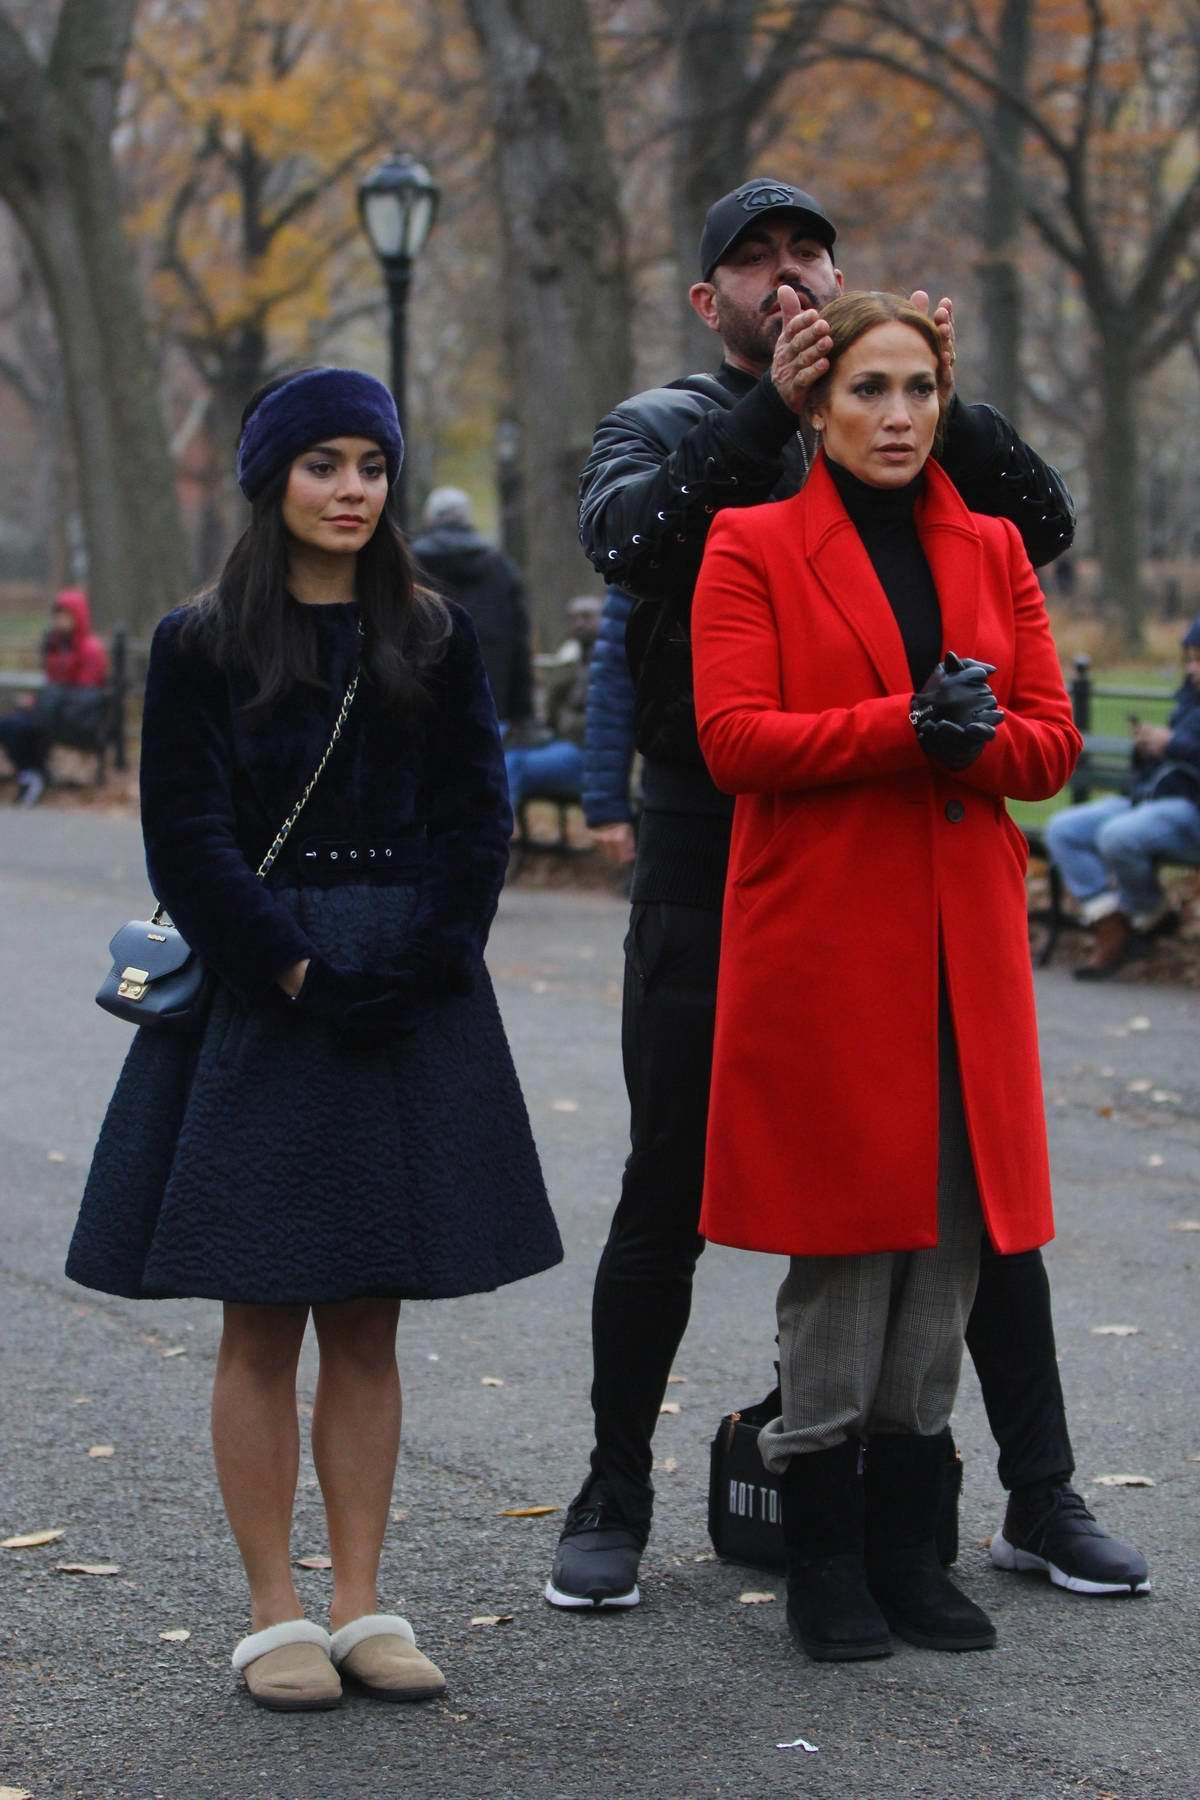 Jennifer Lopez and Vanessa Hudgens filming scenes for their upcoming movie 'Second Act' in New York